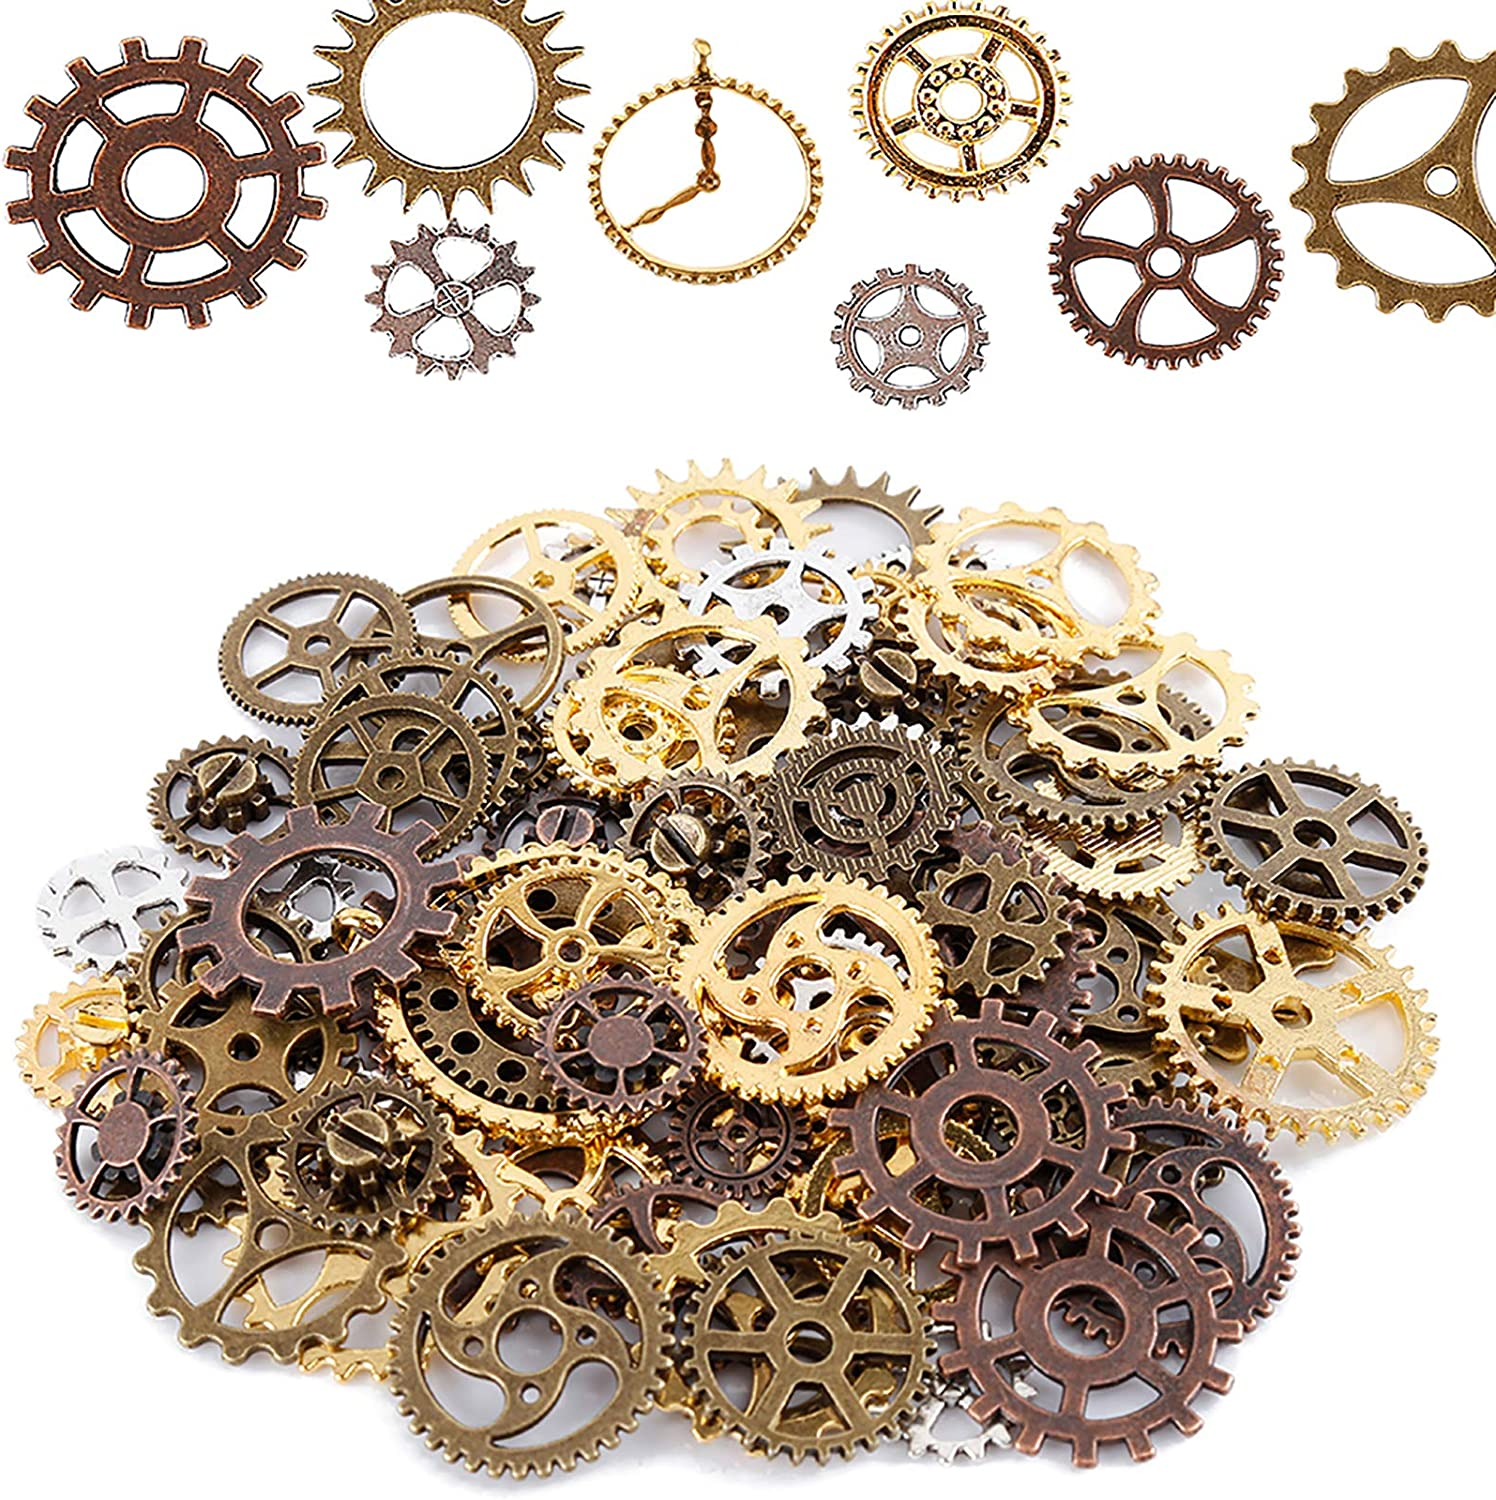 FOCCTS Jewelry Cogs 100 Grams Assorted Antique Steampunk Gears Charms Cogs Clock